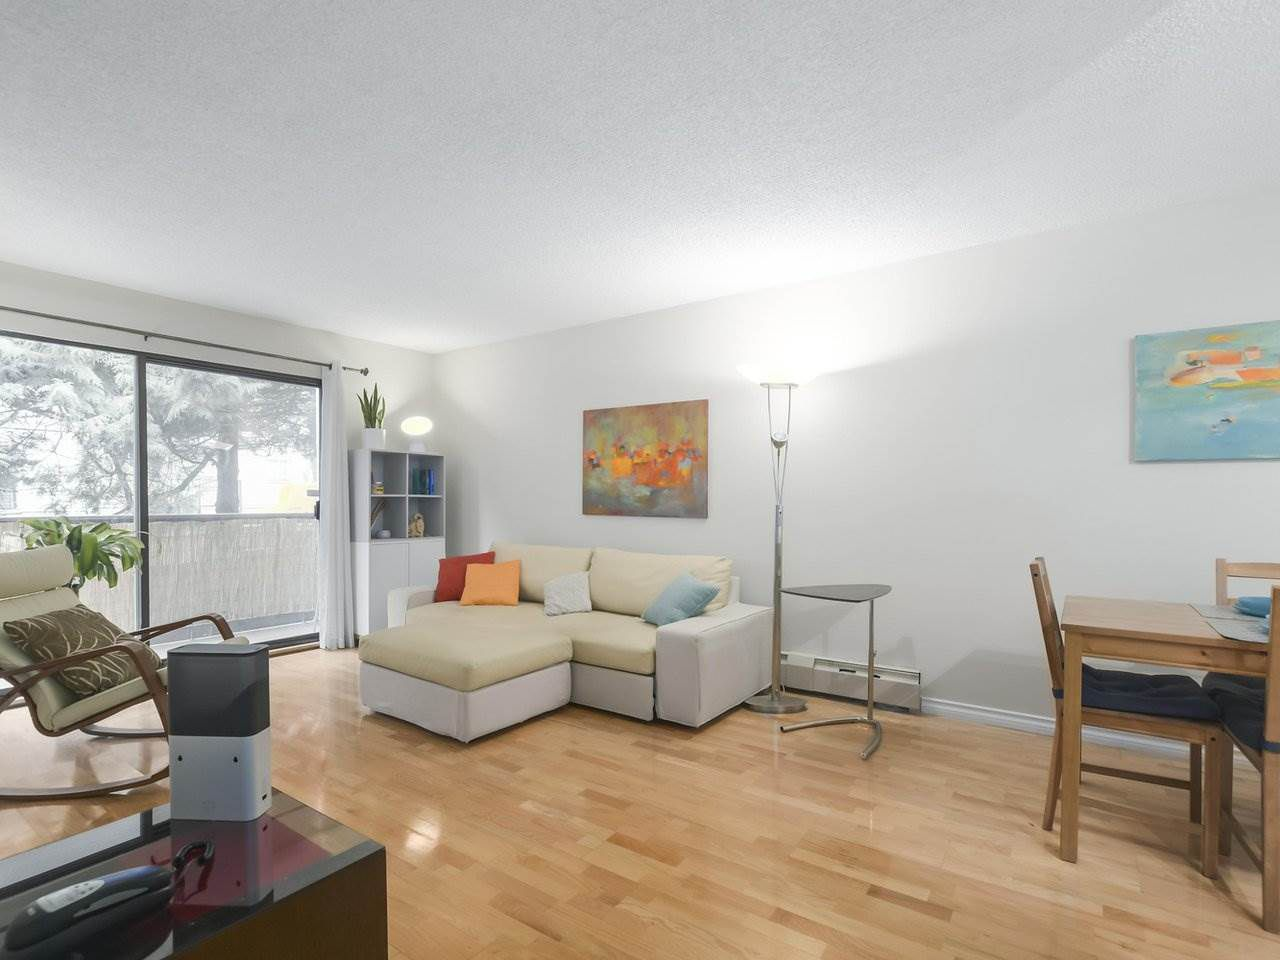 """Main Photo: 208 1515 E 5TH Avenue in Vancouver: Grandview Woodland Condo for sale in """"WOODLANDS PLACE"""" (Vancouver East)  : MLS®# R2376599"""